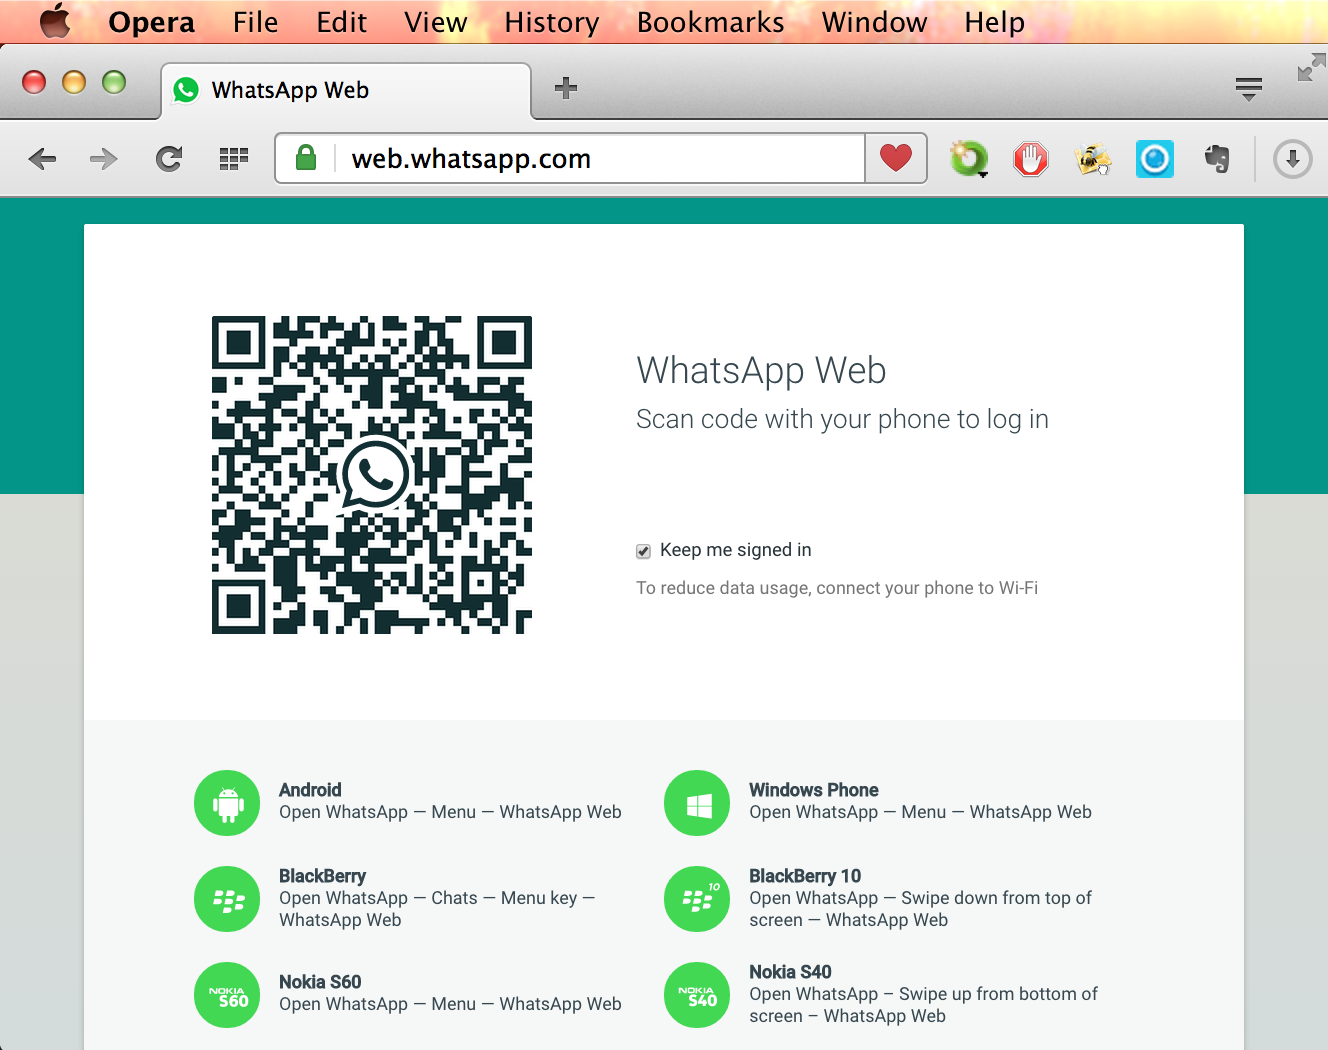 Chat with WhatsApp Web using Opera for computers - Opera India